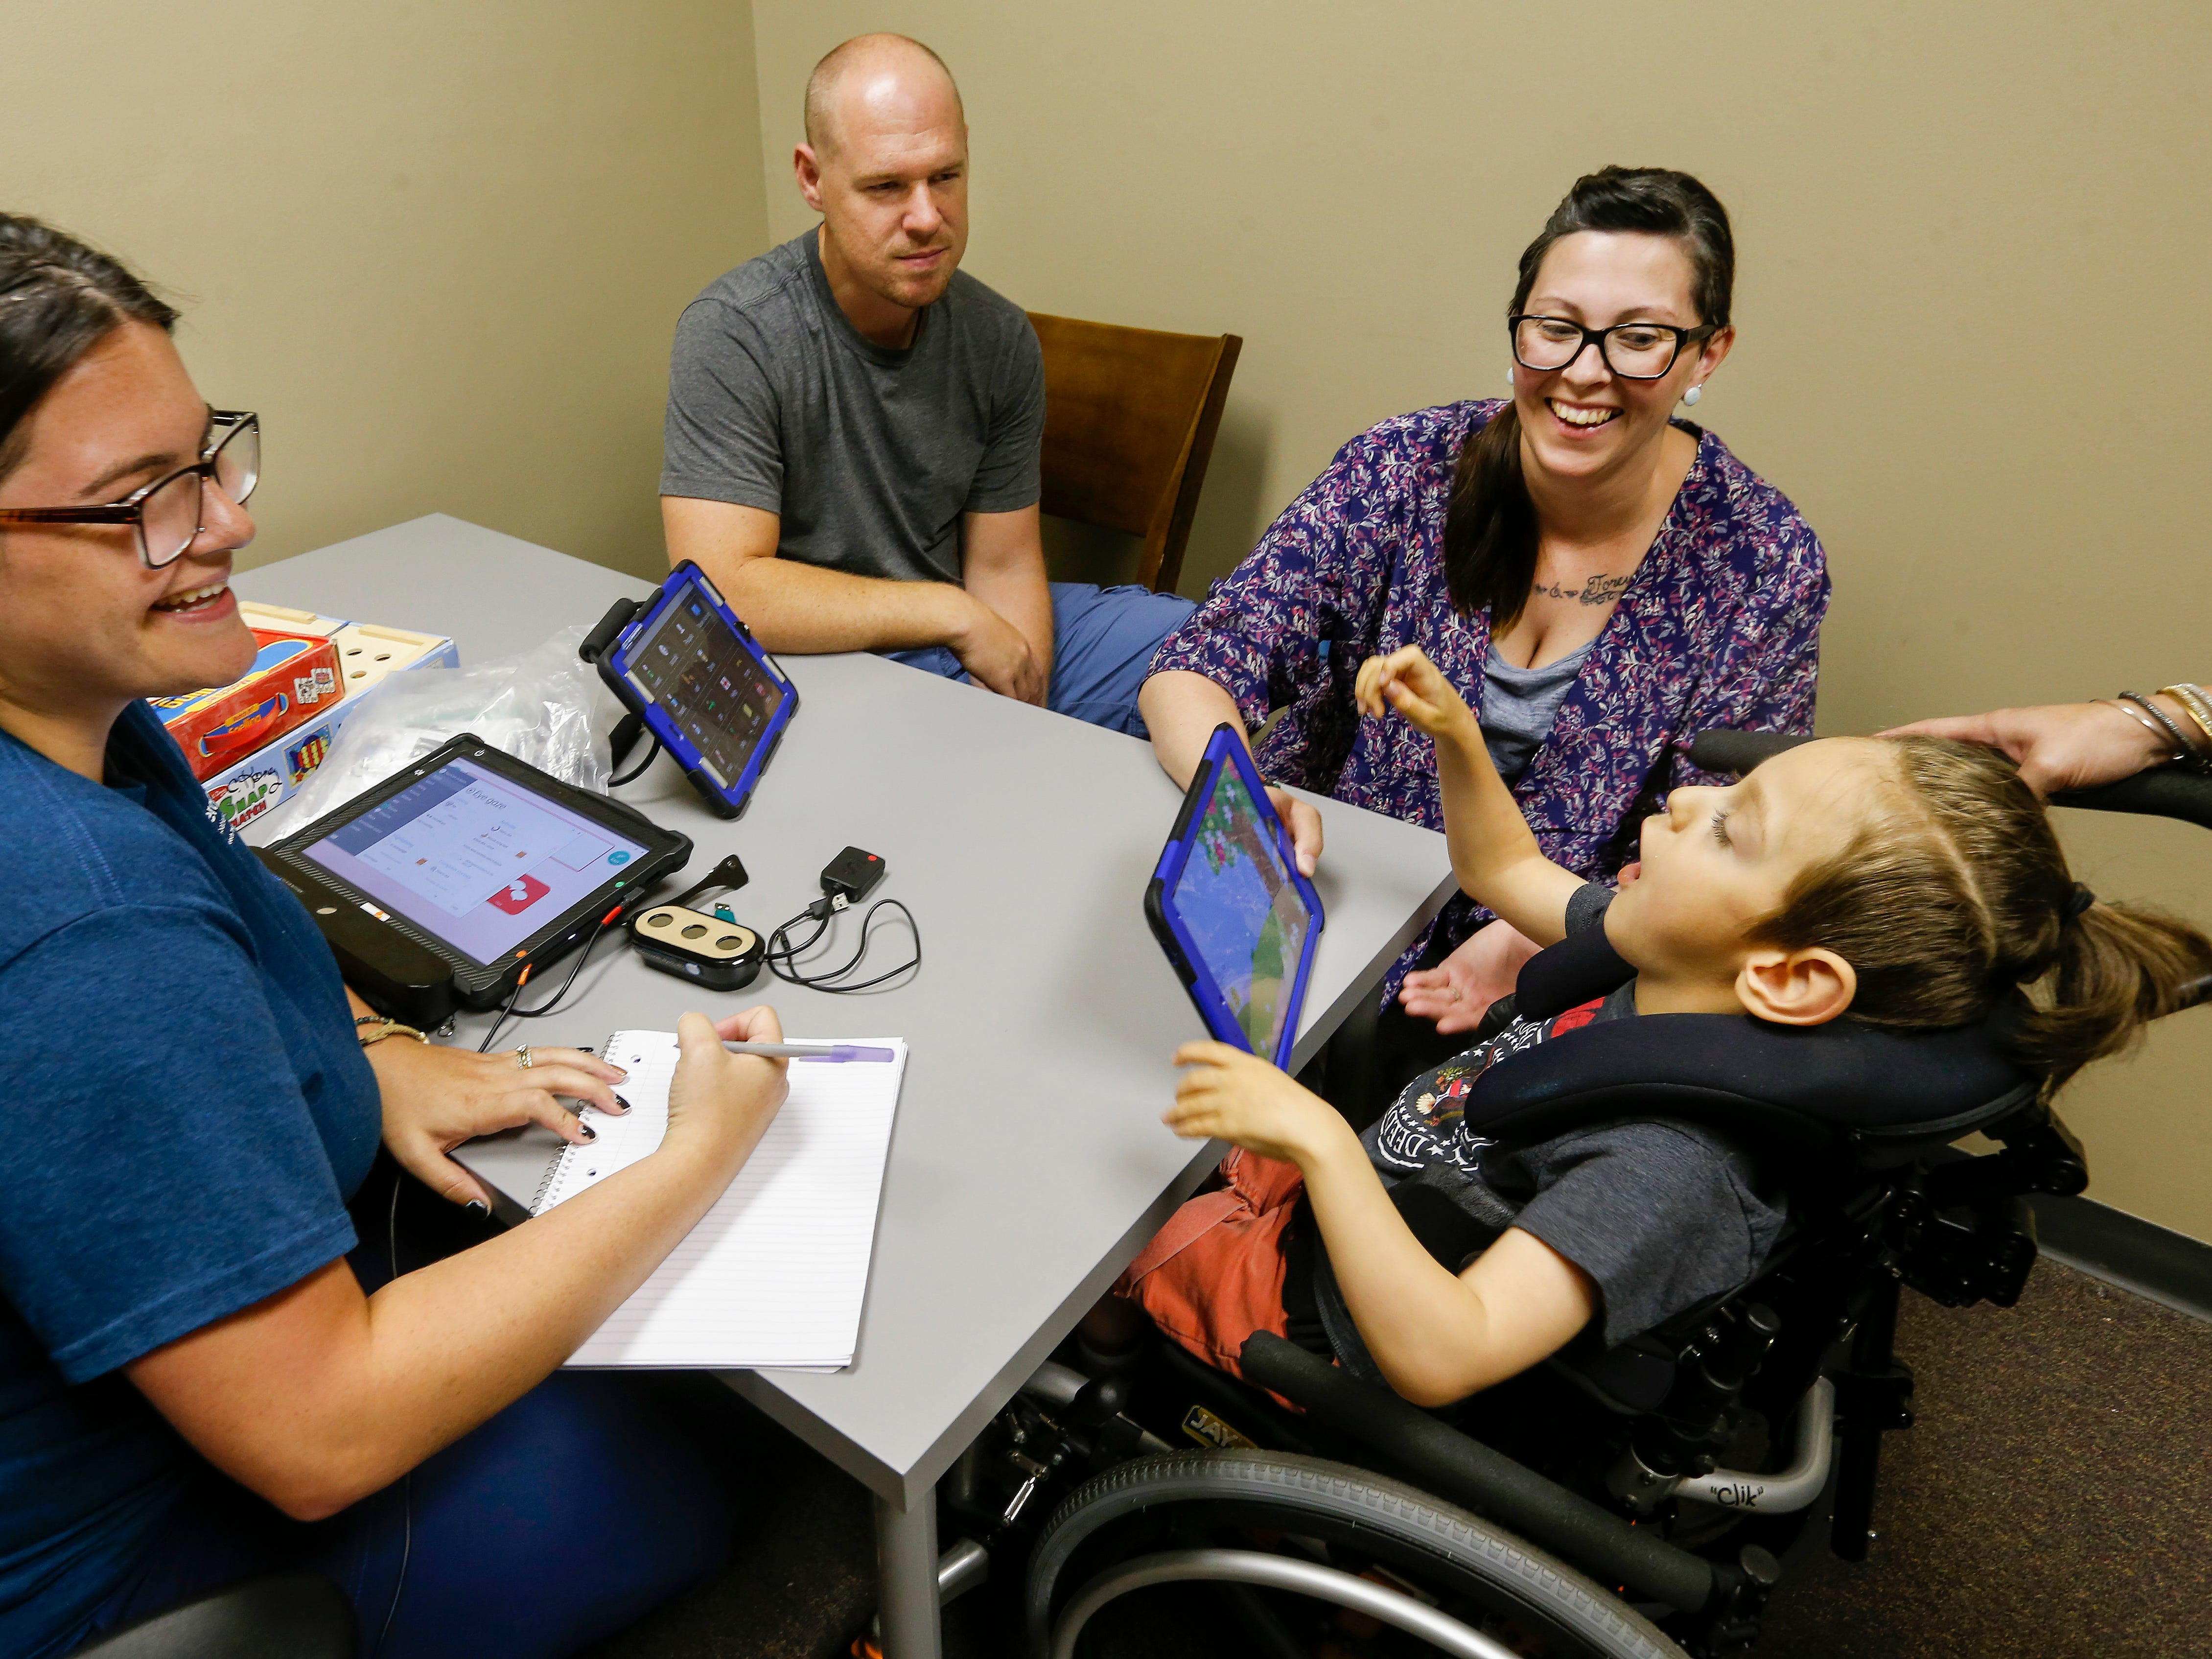 Chris and Ashley Markum meet with Allyson Beary about getting Ayden Markum, 5, an eyegaze communication device at TheraCare in Springfield on Tuesday, June 12, 2018.